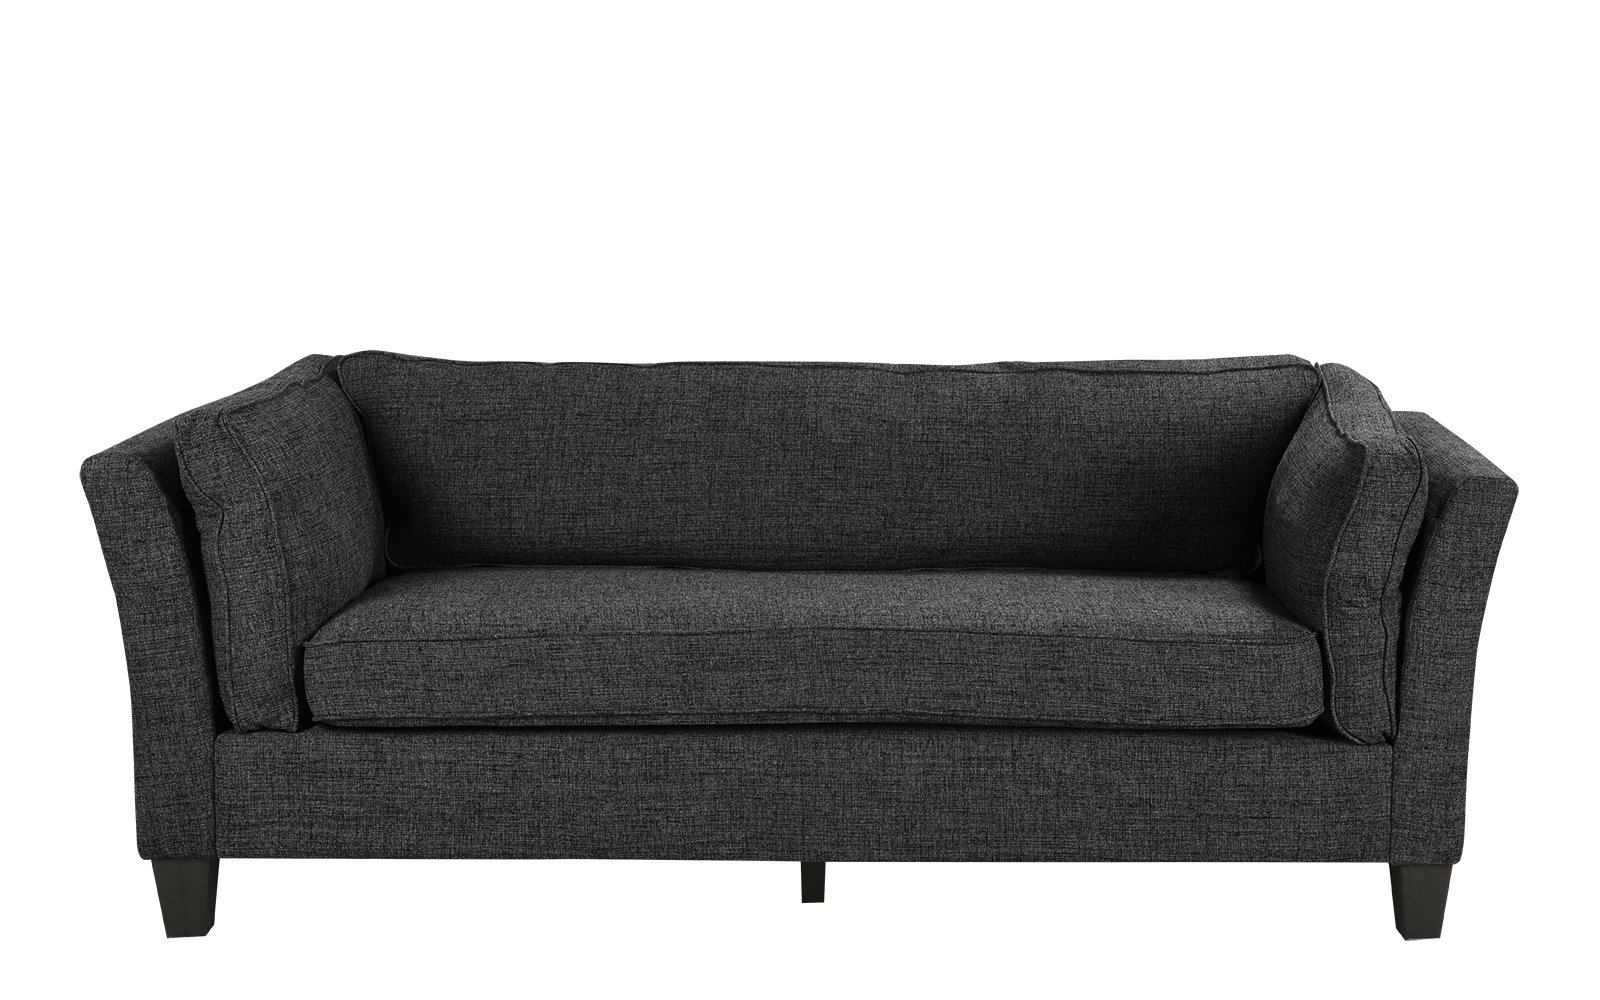 Details About Modern Mid Century Lounge Sofa, Linen Fabric Sofa Couch In  Dark Ash Grey